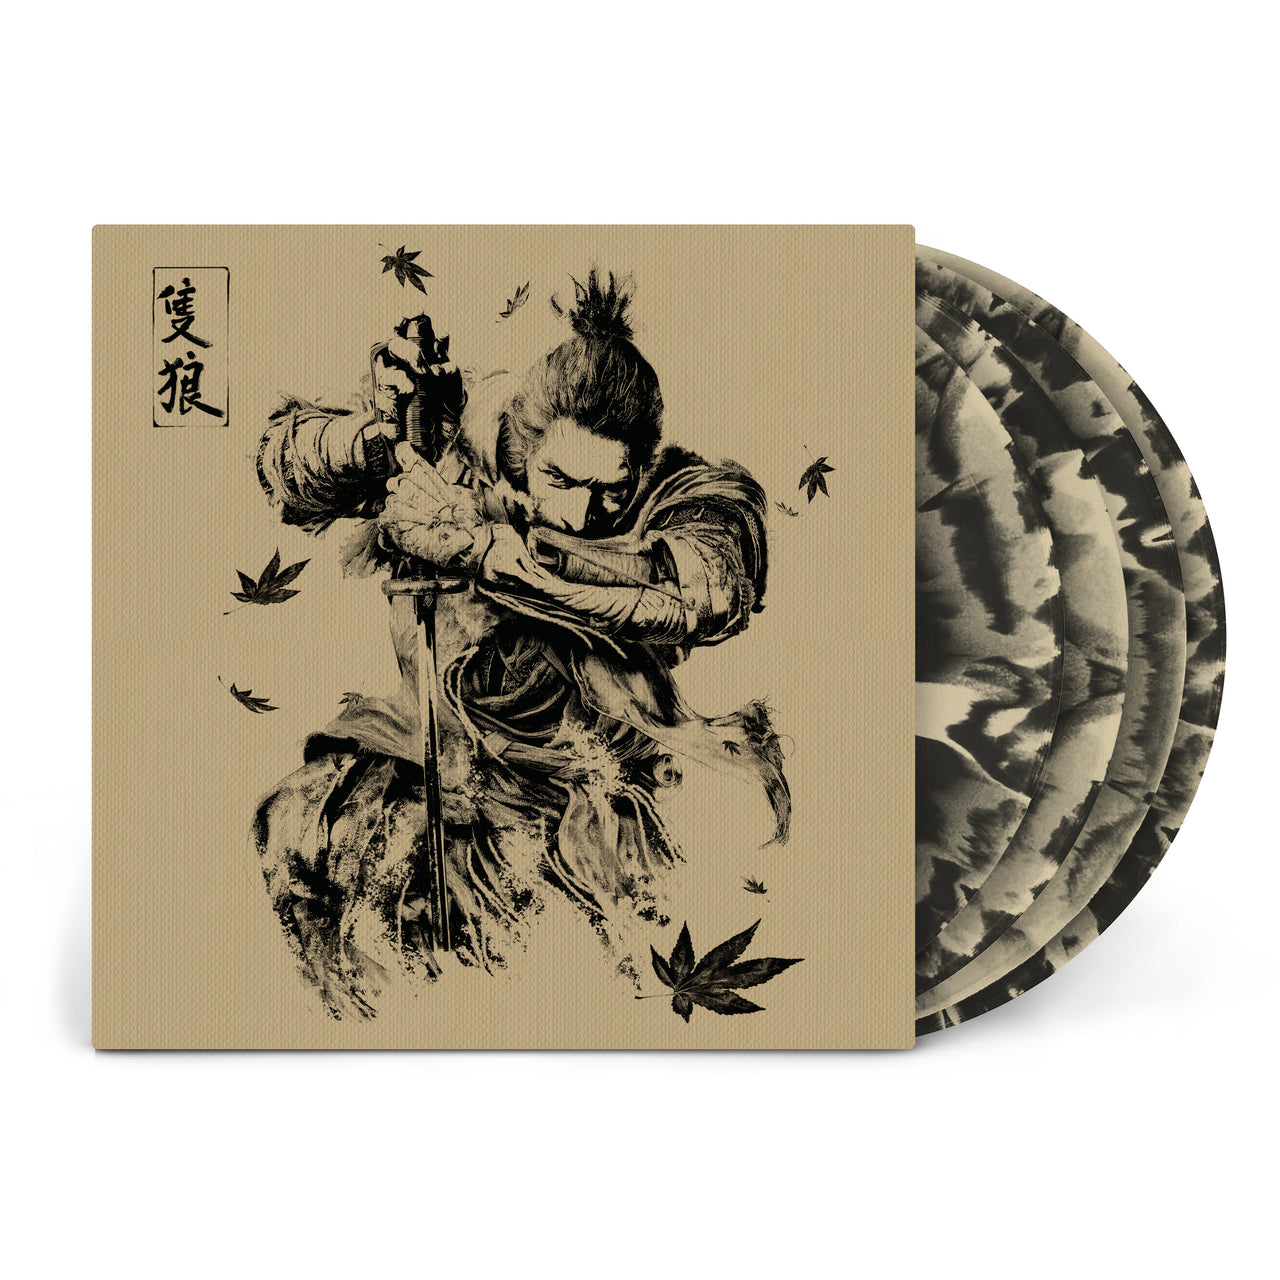 Sekiro: Shadows Die Twice (Limited Special Edition X4LP Box Set)